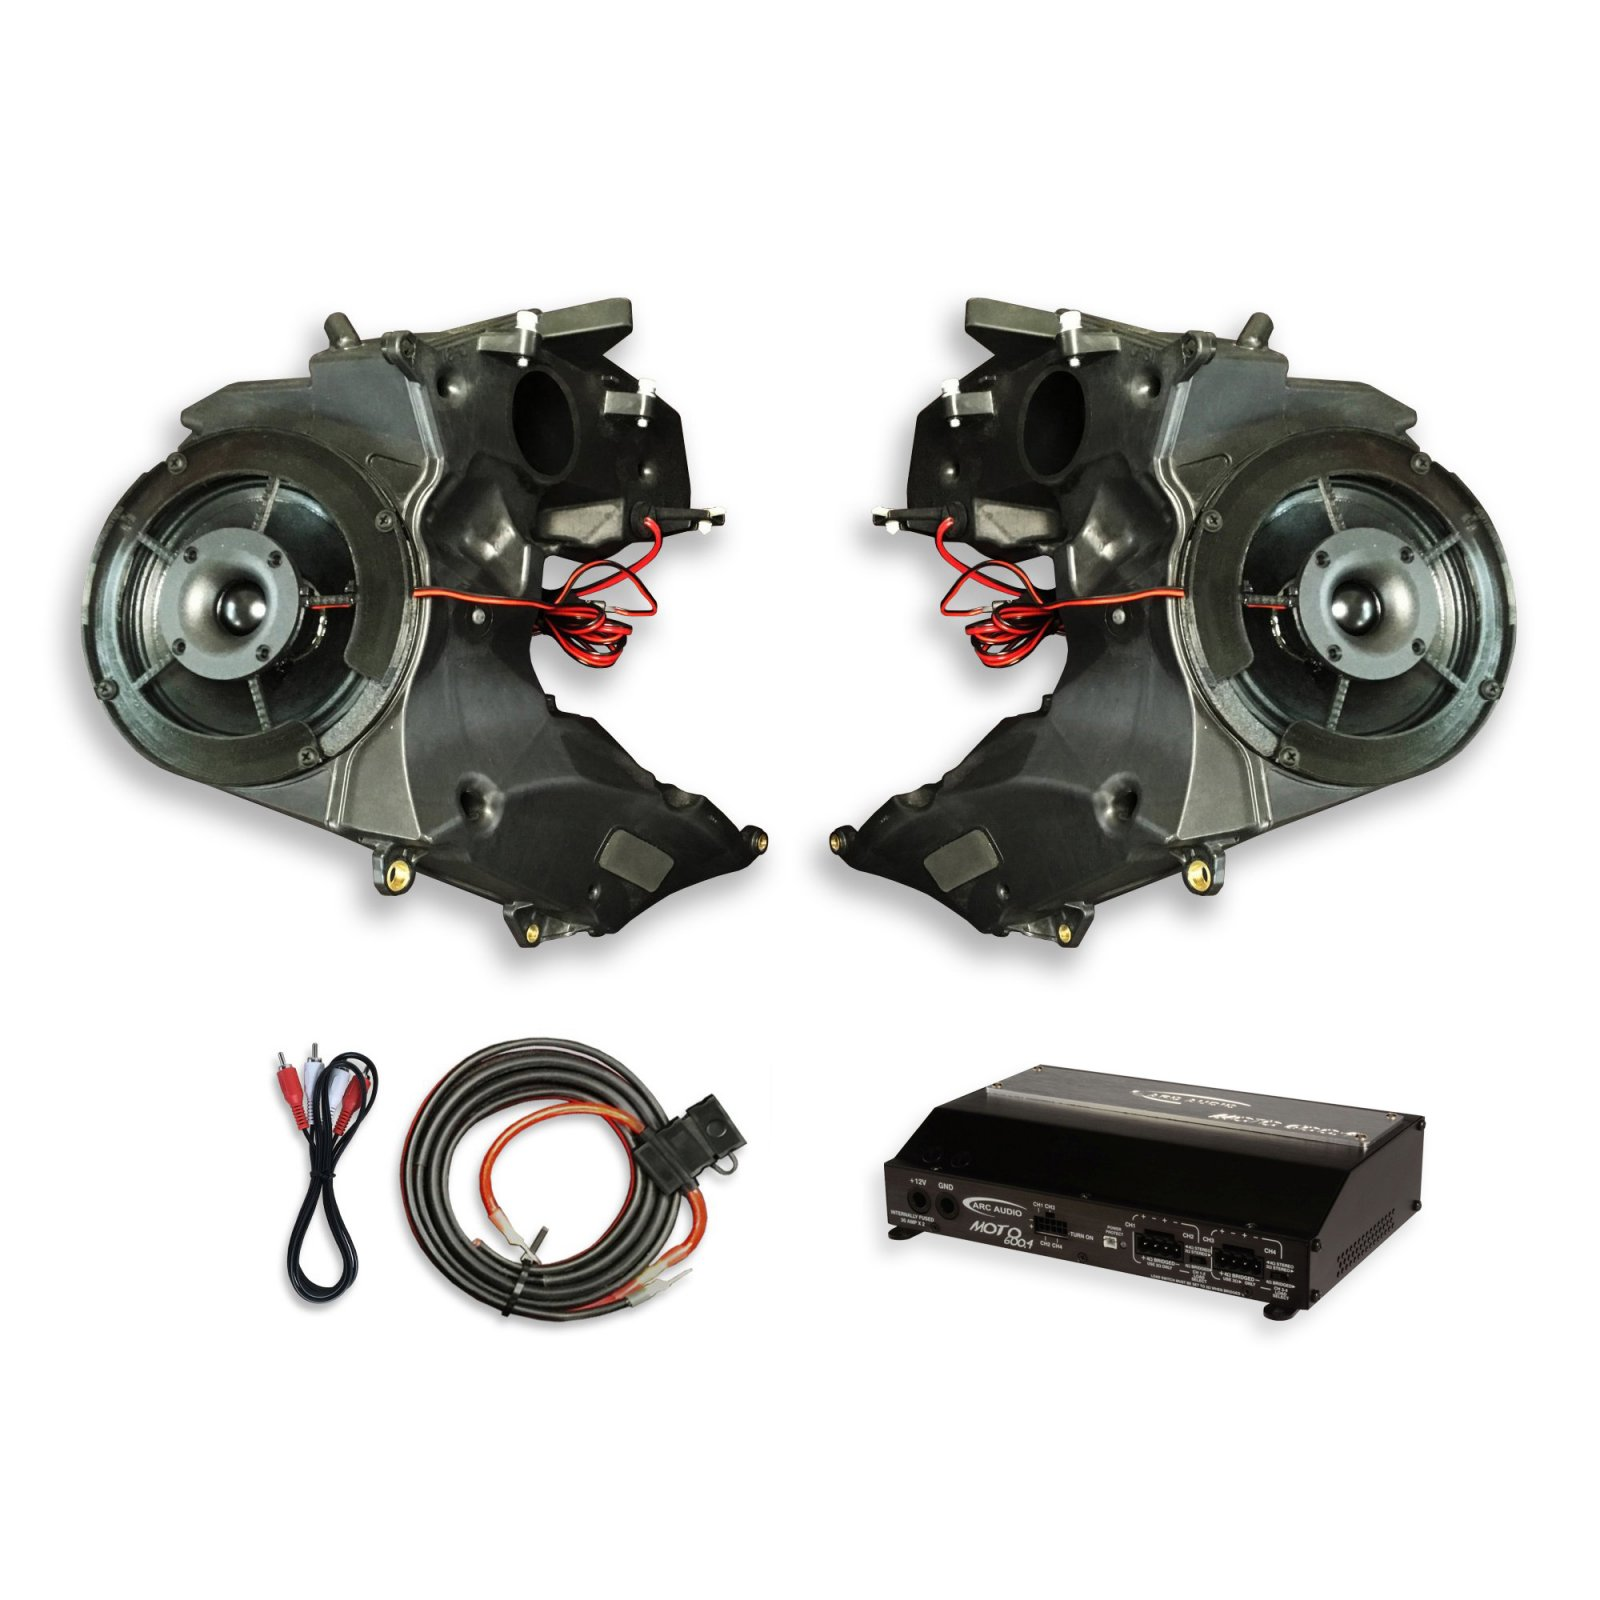 19-UP Road Glide SinisterSound Fairing System w/Arc Audio Moto720